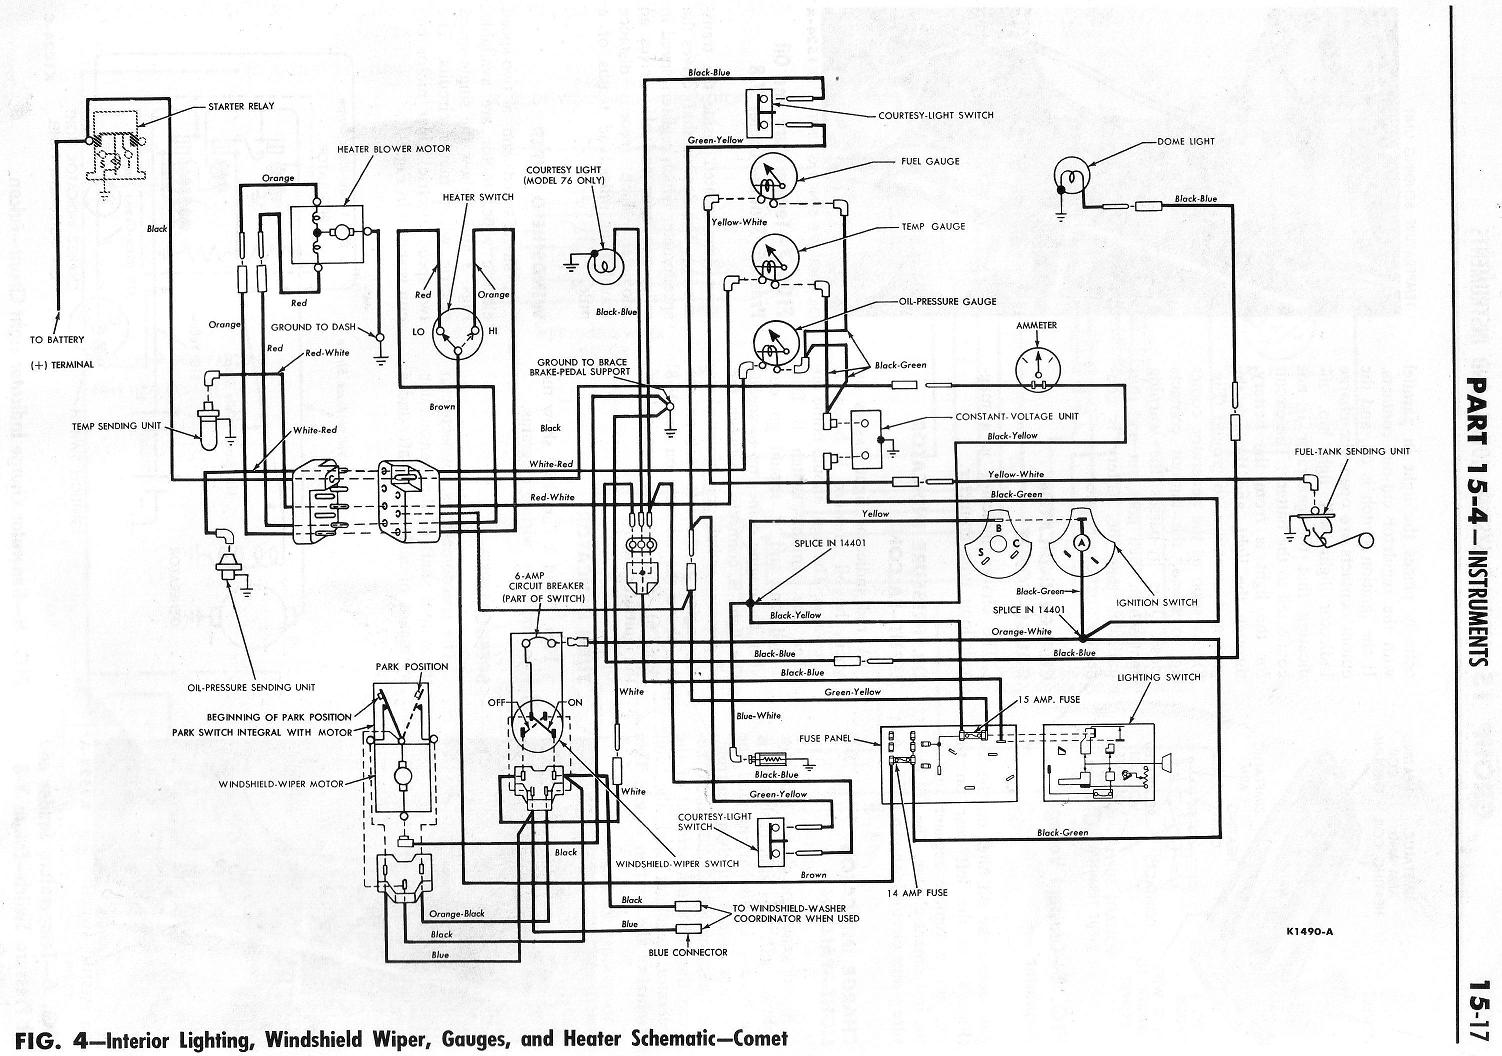 1964 Ford Truck Ignition Switch Wiring Diagram, 1964, Free